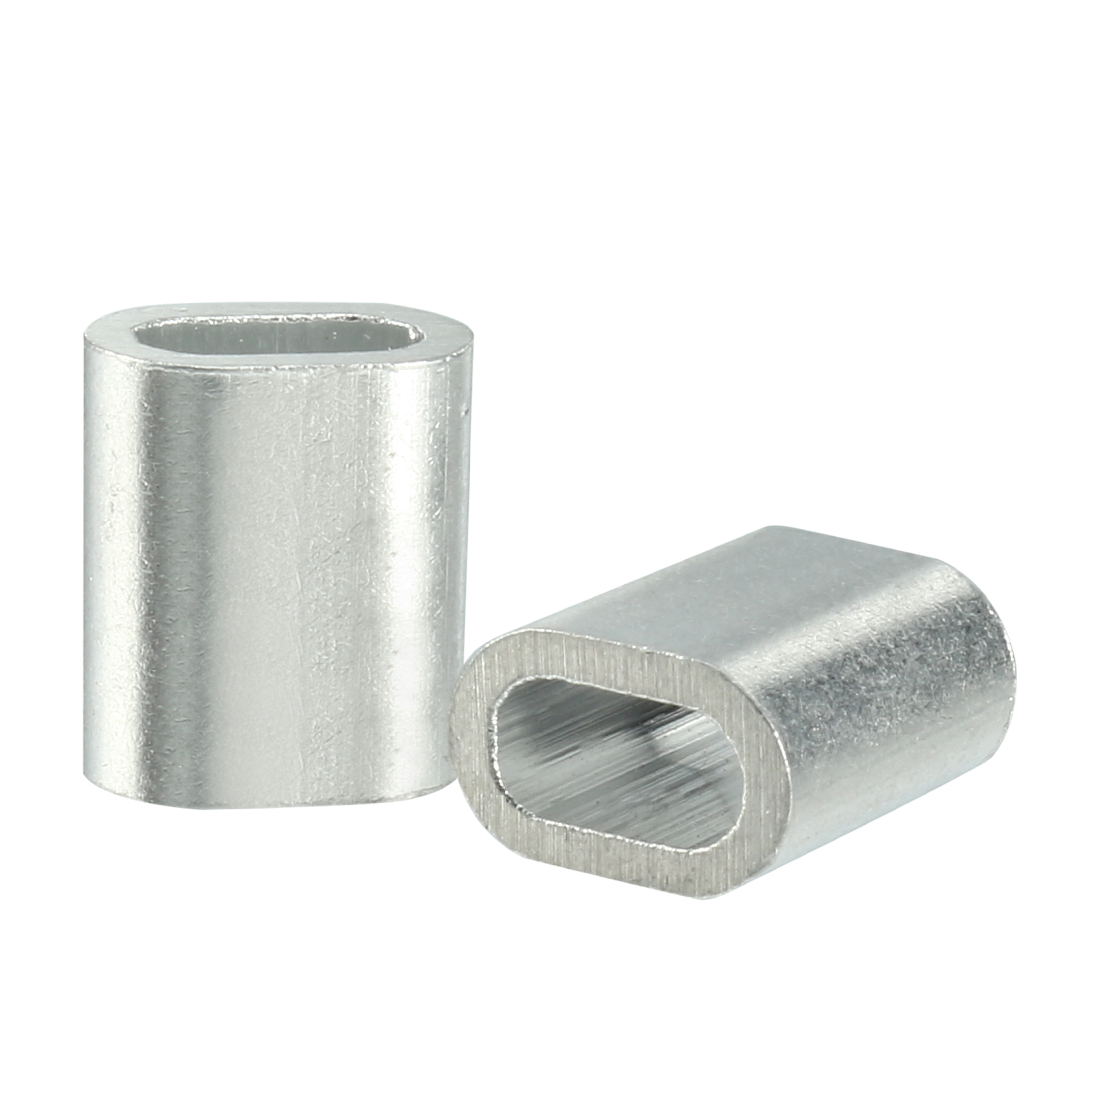 1mm 5/128-inch Cable Wire Rope Aluminum Sleeves Clip Fittings Crimps Loop 50pcs